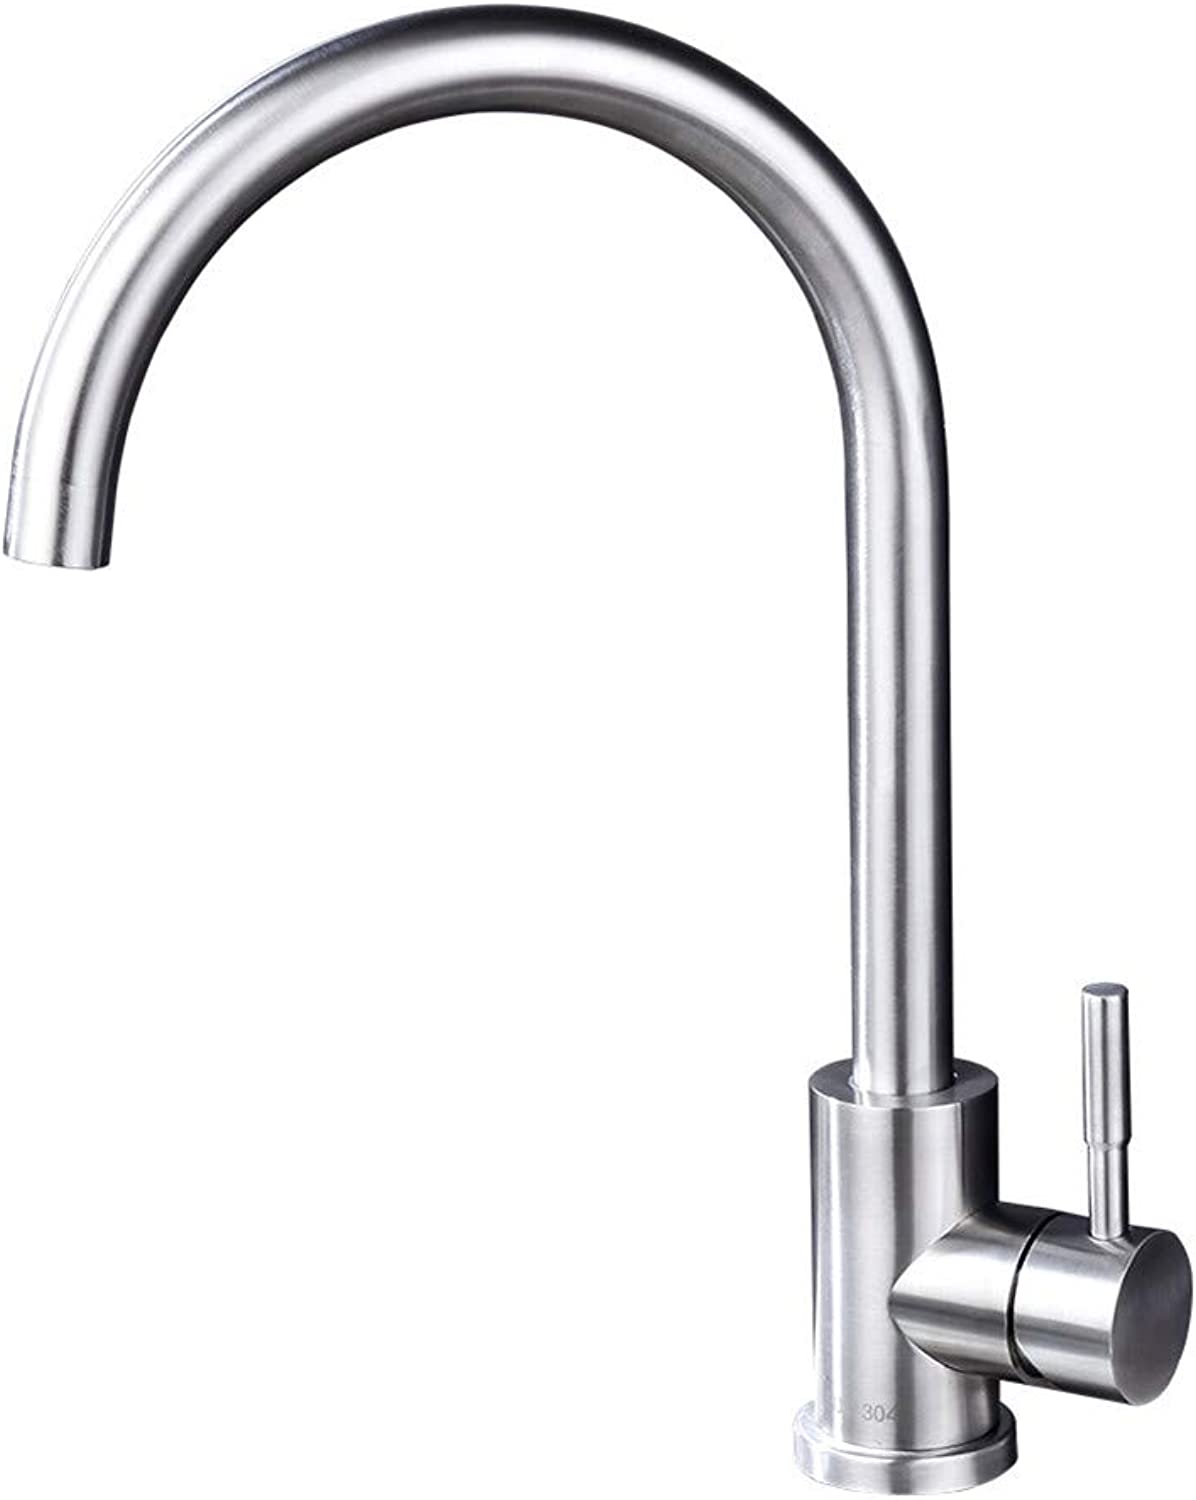 JIANGYE Single Handle High Arc Brushed 360 degree redation Kitchen Faucet Lead free 304 Stainless Steel Kitchen Sink Faucets balcony hot and cold water basin